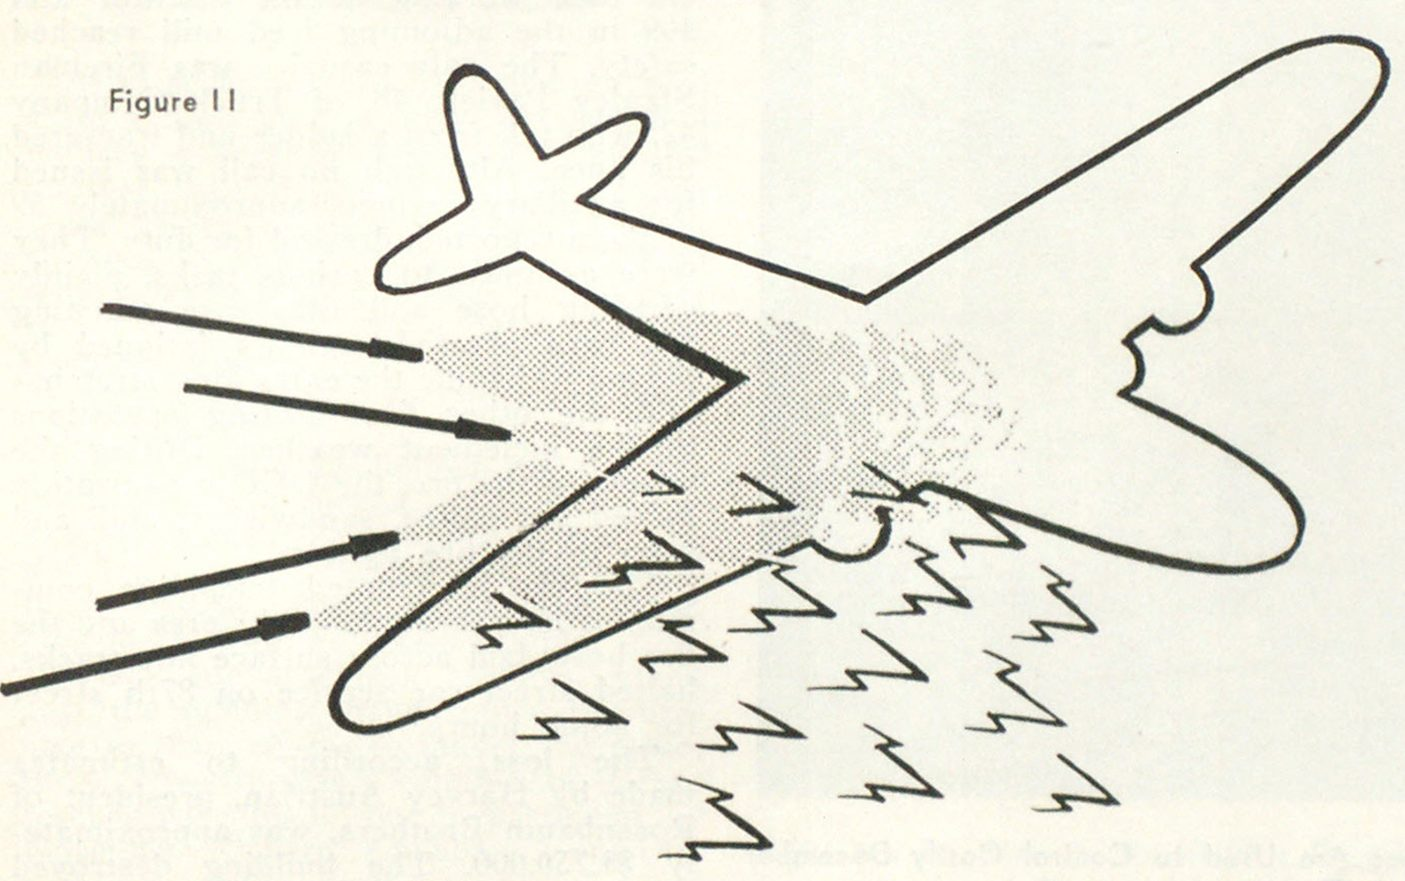 Figure 11 It must not be inferred from the foregoing illustrations that all fires must be attacked through the center. How to use the fog streams or fog front to sweep burning fuel from a fuselage, and protect the occupants is shown in Figure 11.